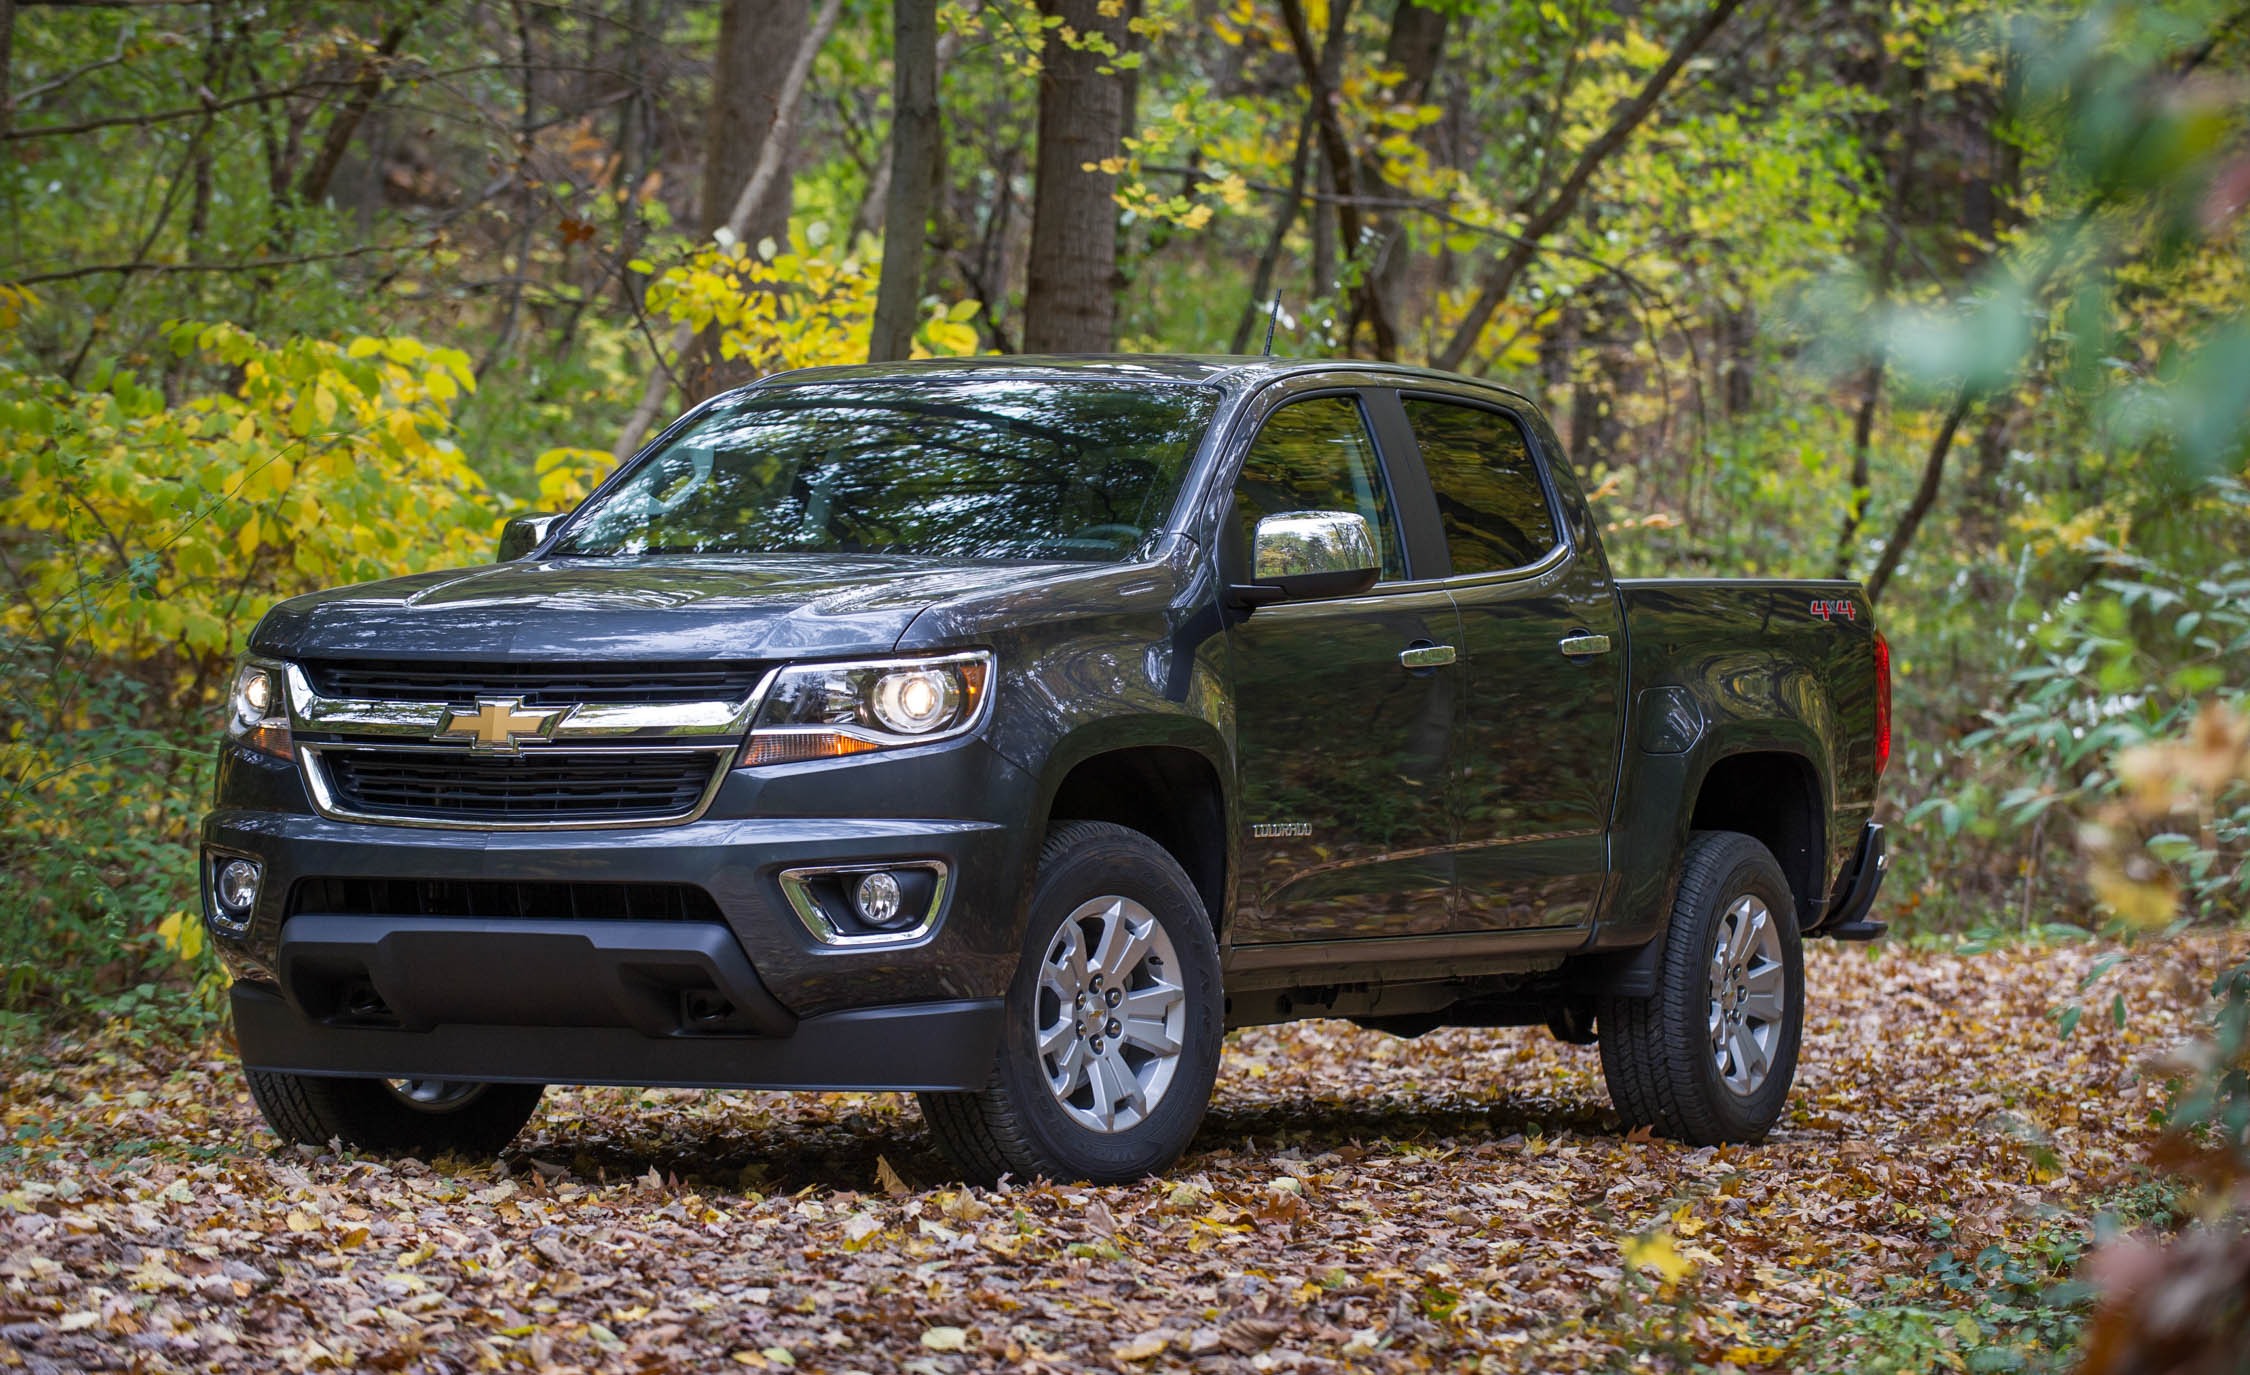 2017 Chevrolet Colorado Exterior Front And Side (View 39 of 41)